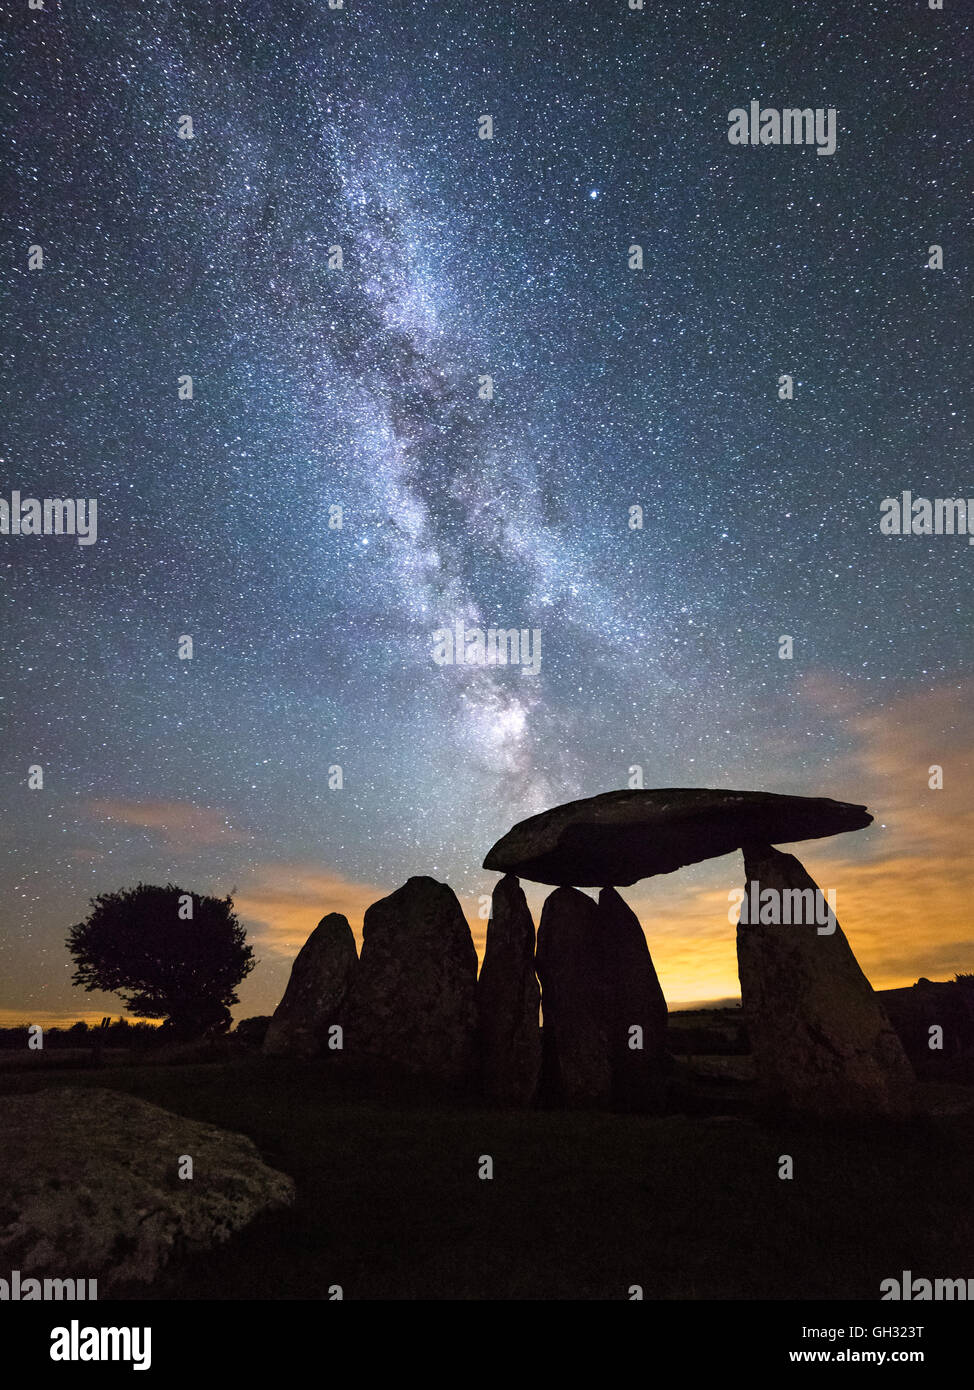 Milky Way streaks over the Pentre Ifan burial chamber in the Preseli mountains, Pembrokeshire. A chambered tomb - Stock Image